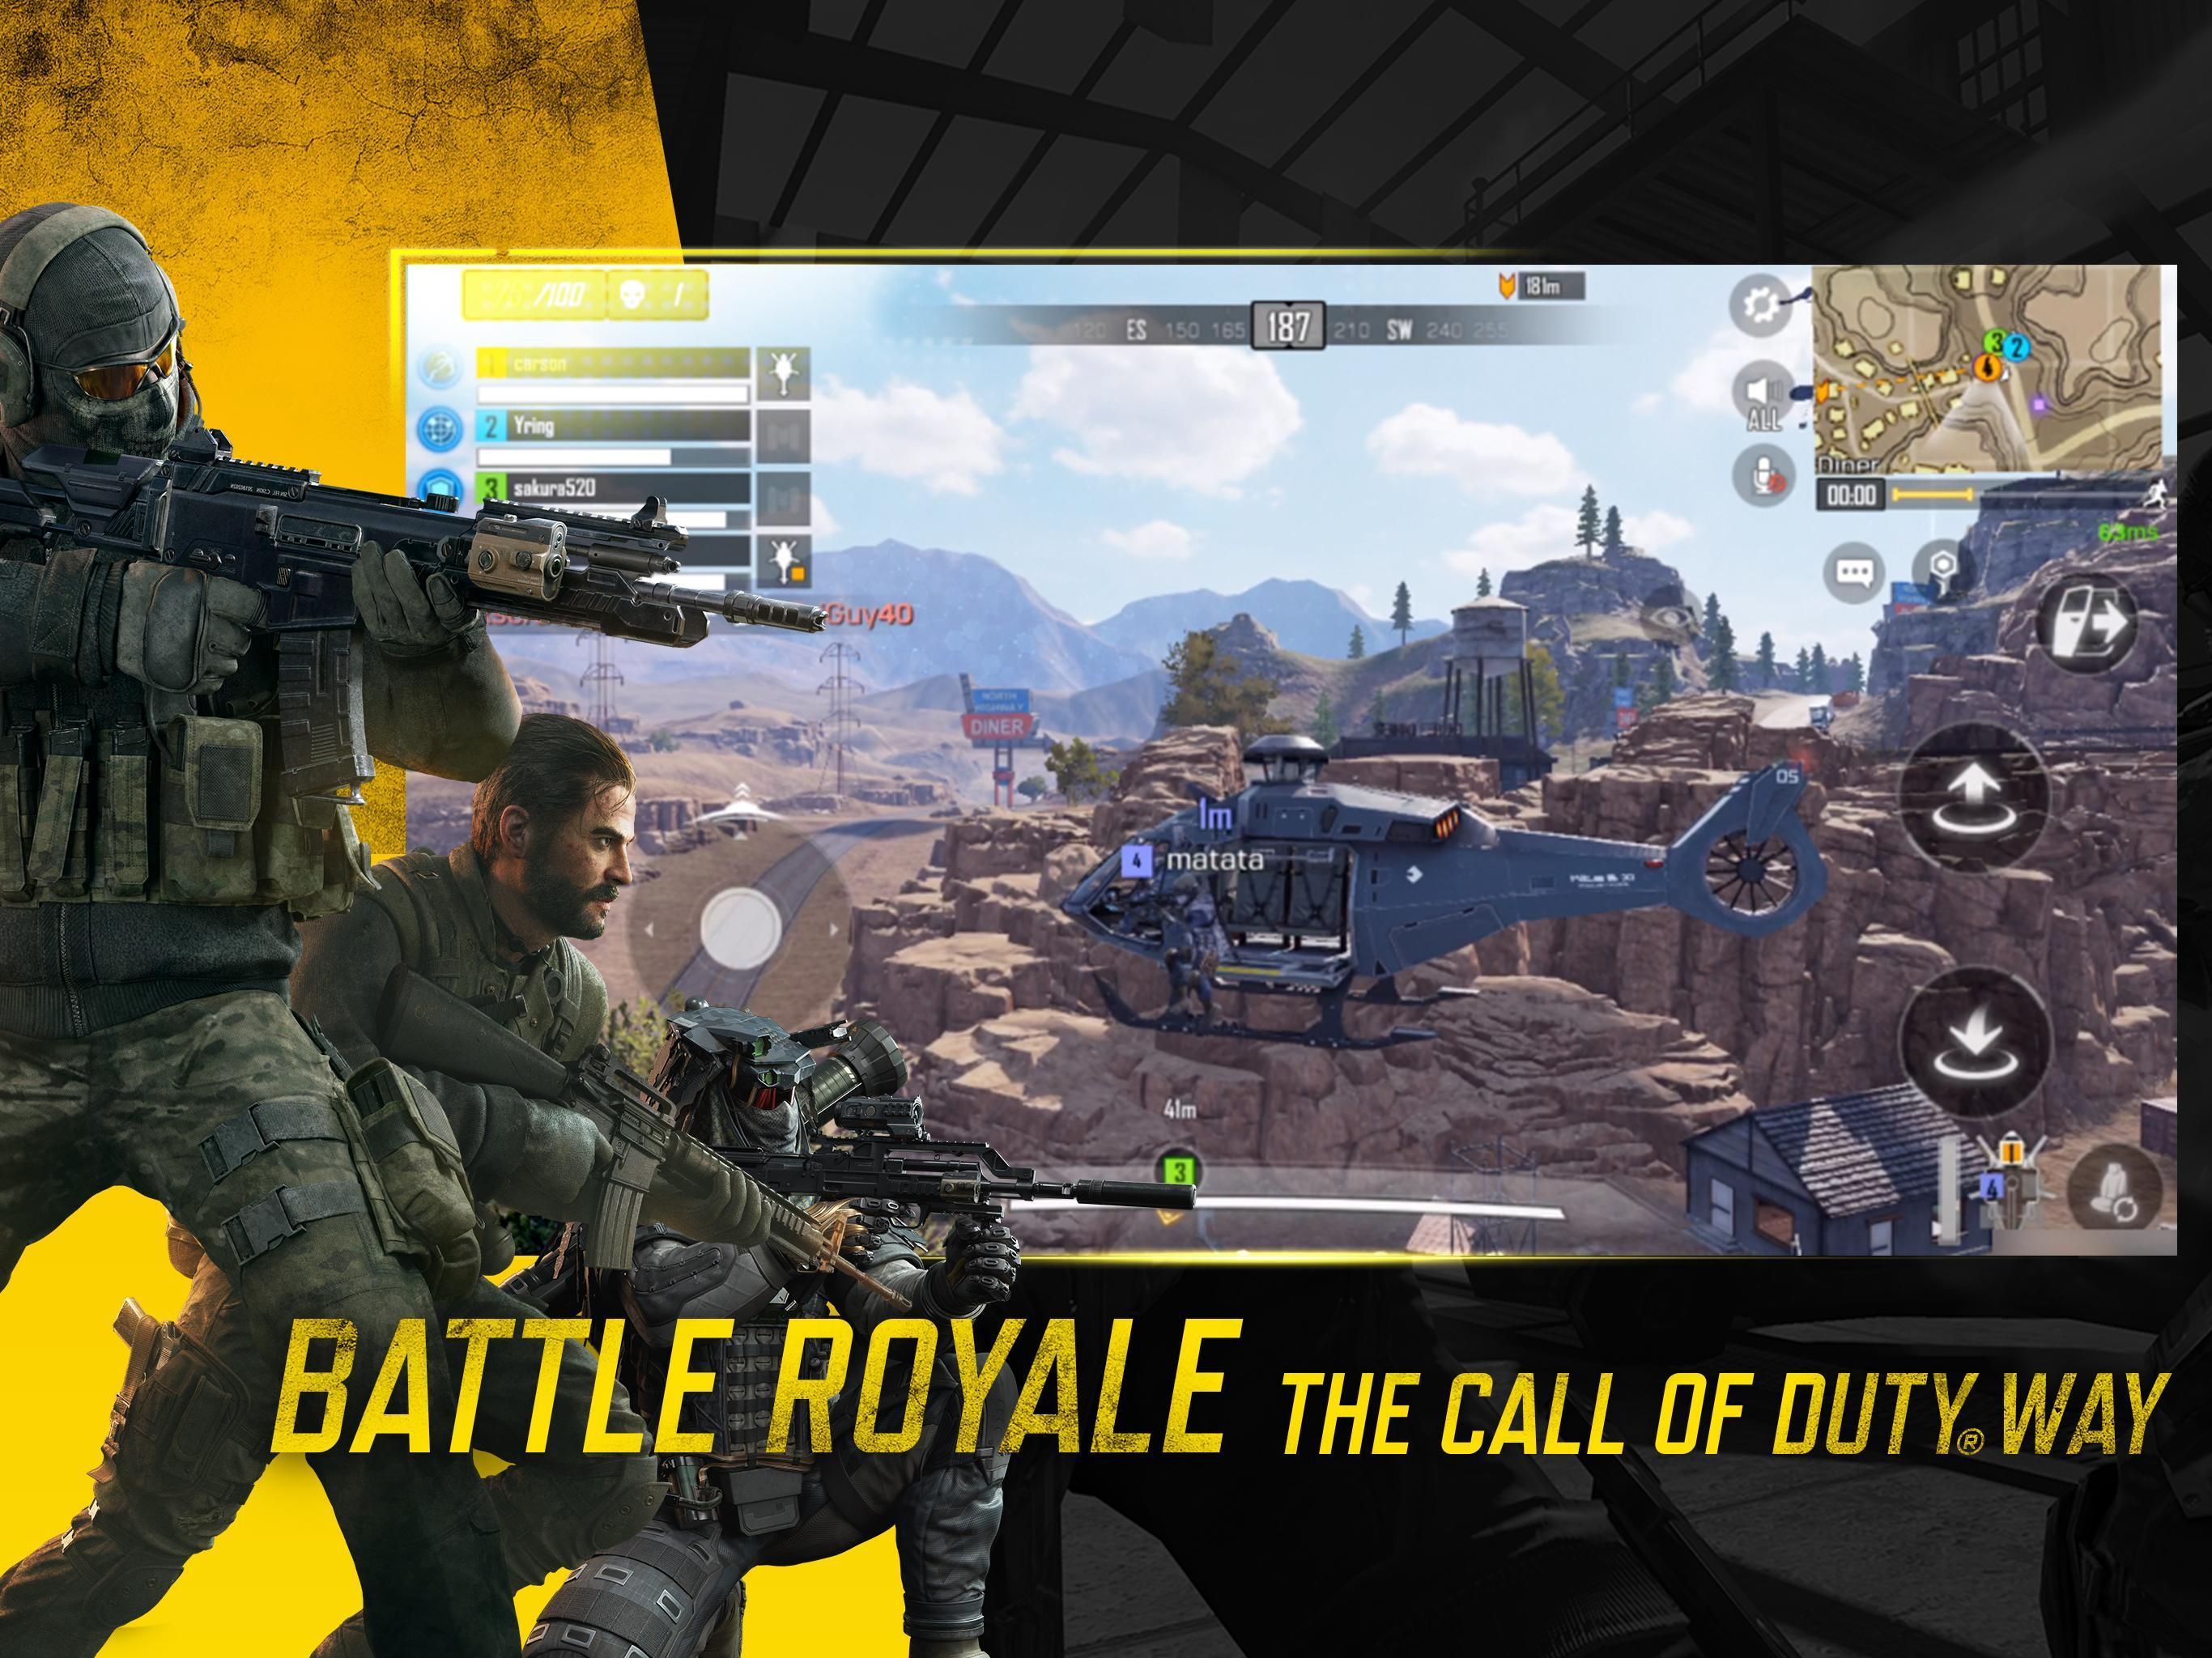 Call of Duty: Legends of War Download - Call of Duty Mobile